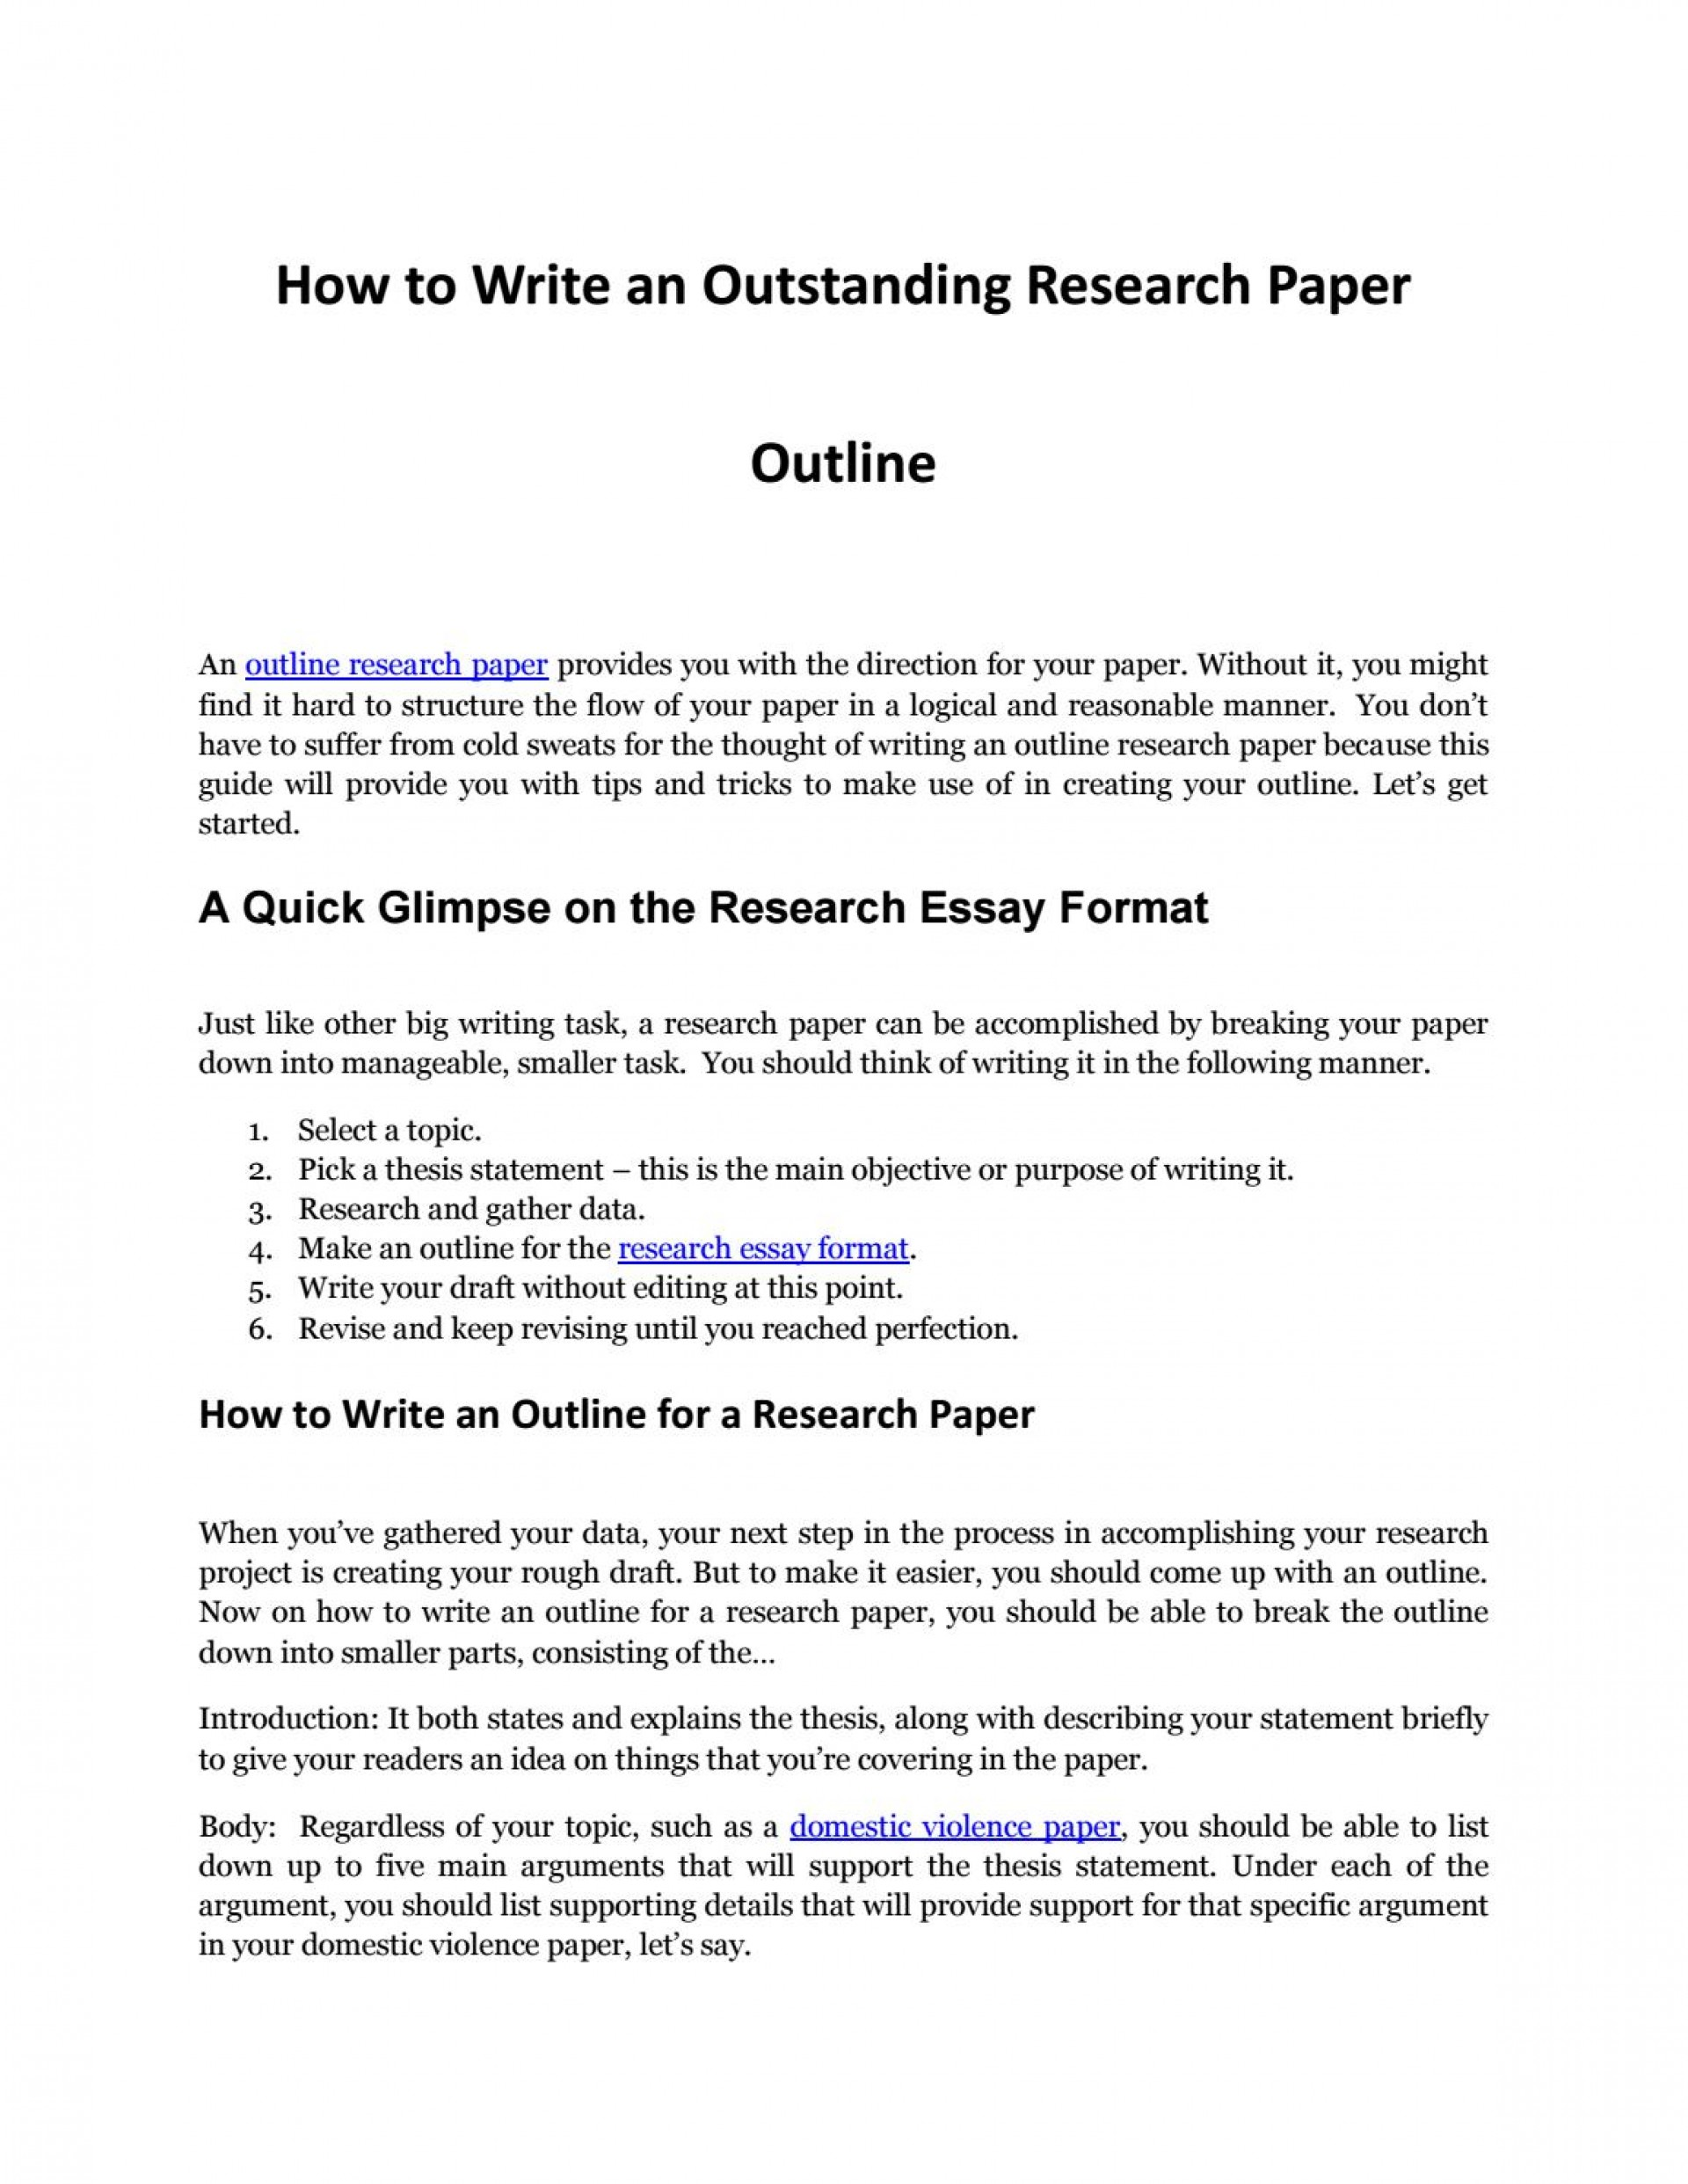 012 How To Write An Outline For Research Paper Page 1 Rare A Ppt Apa Mla Style 1920